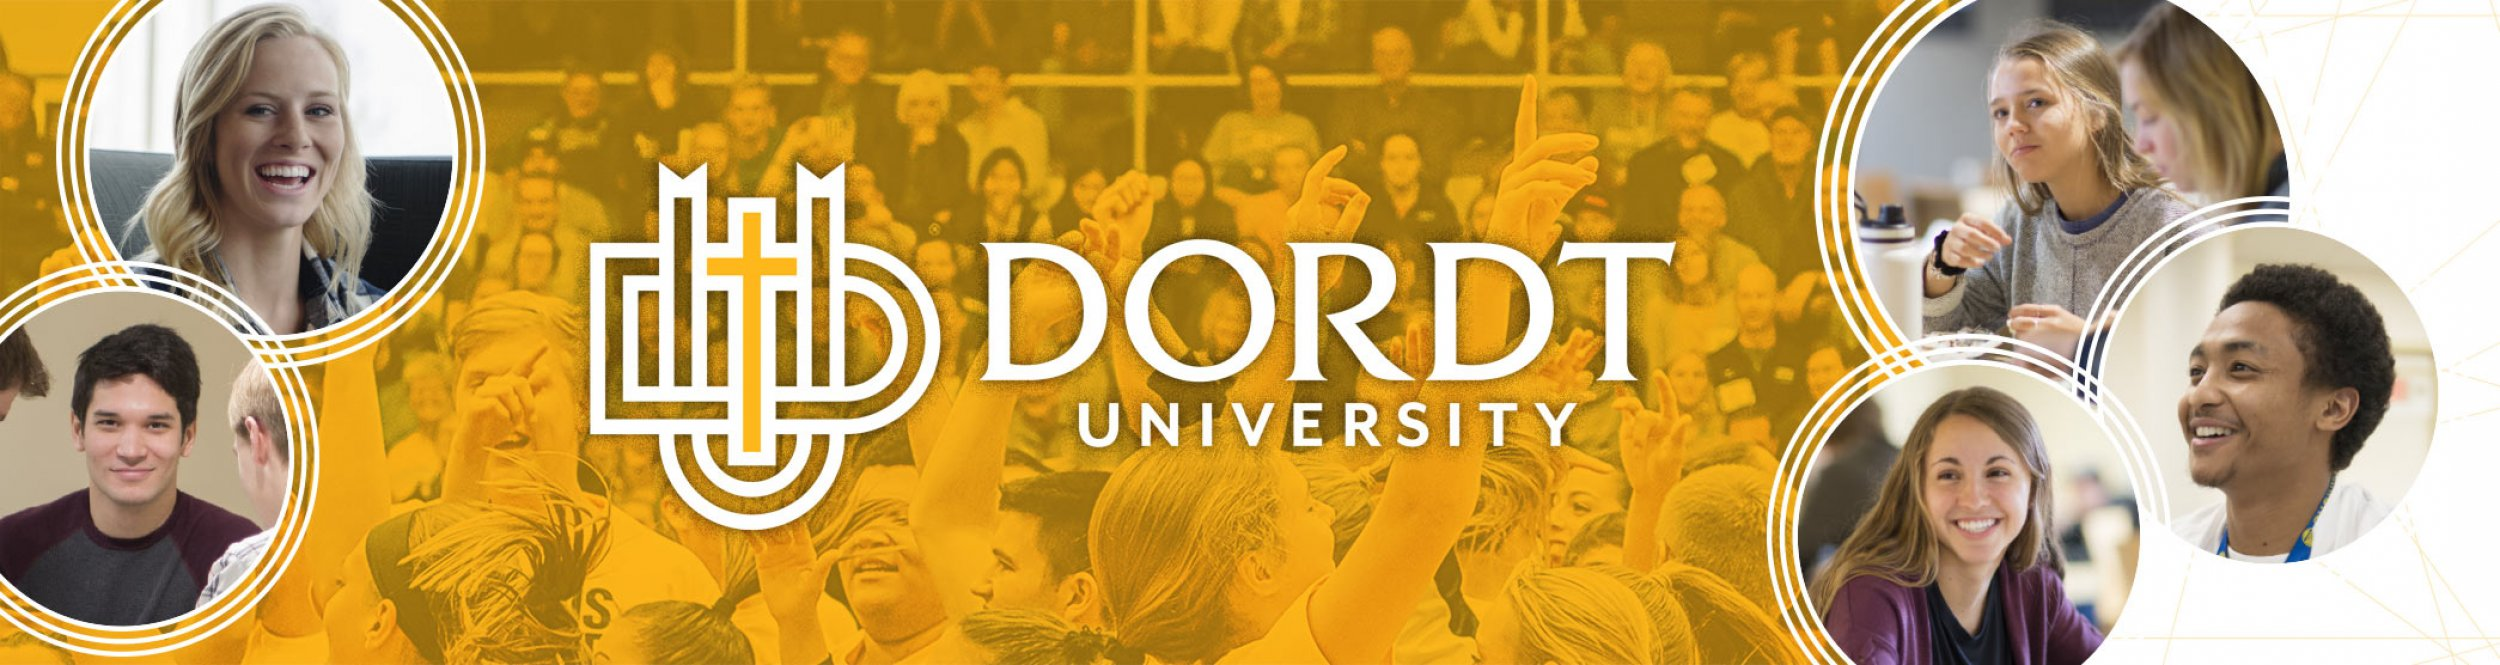 """The text """"Dordt University"""" over students cheering."""